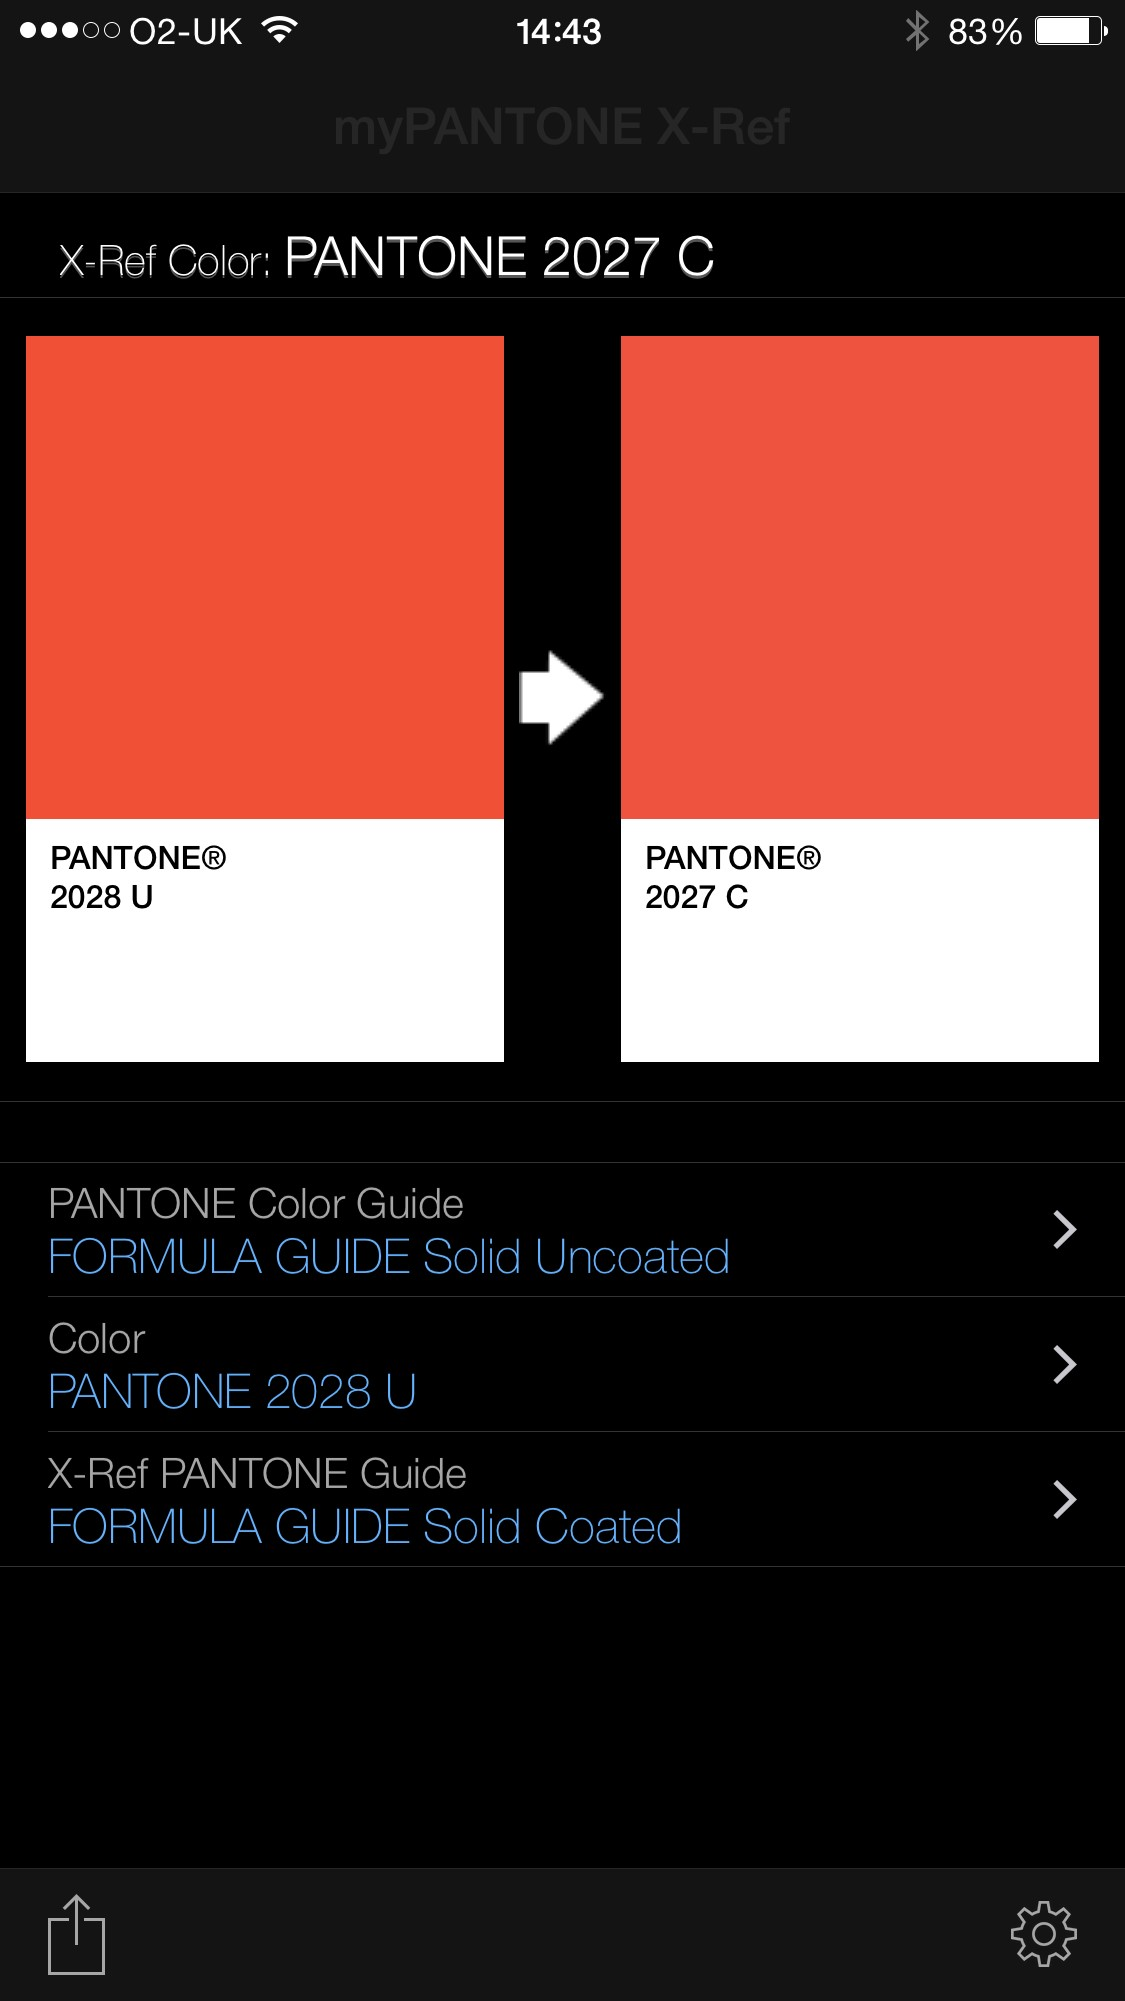 Great Tool From Pantone Matching Colour To Pantone References The Umbrella Workshop